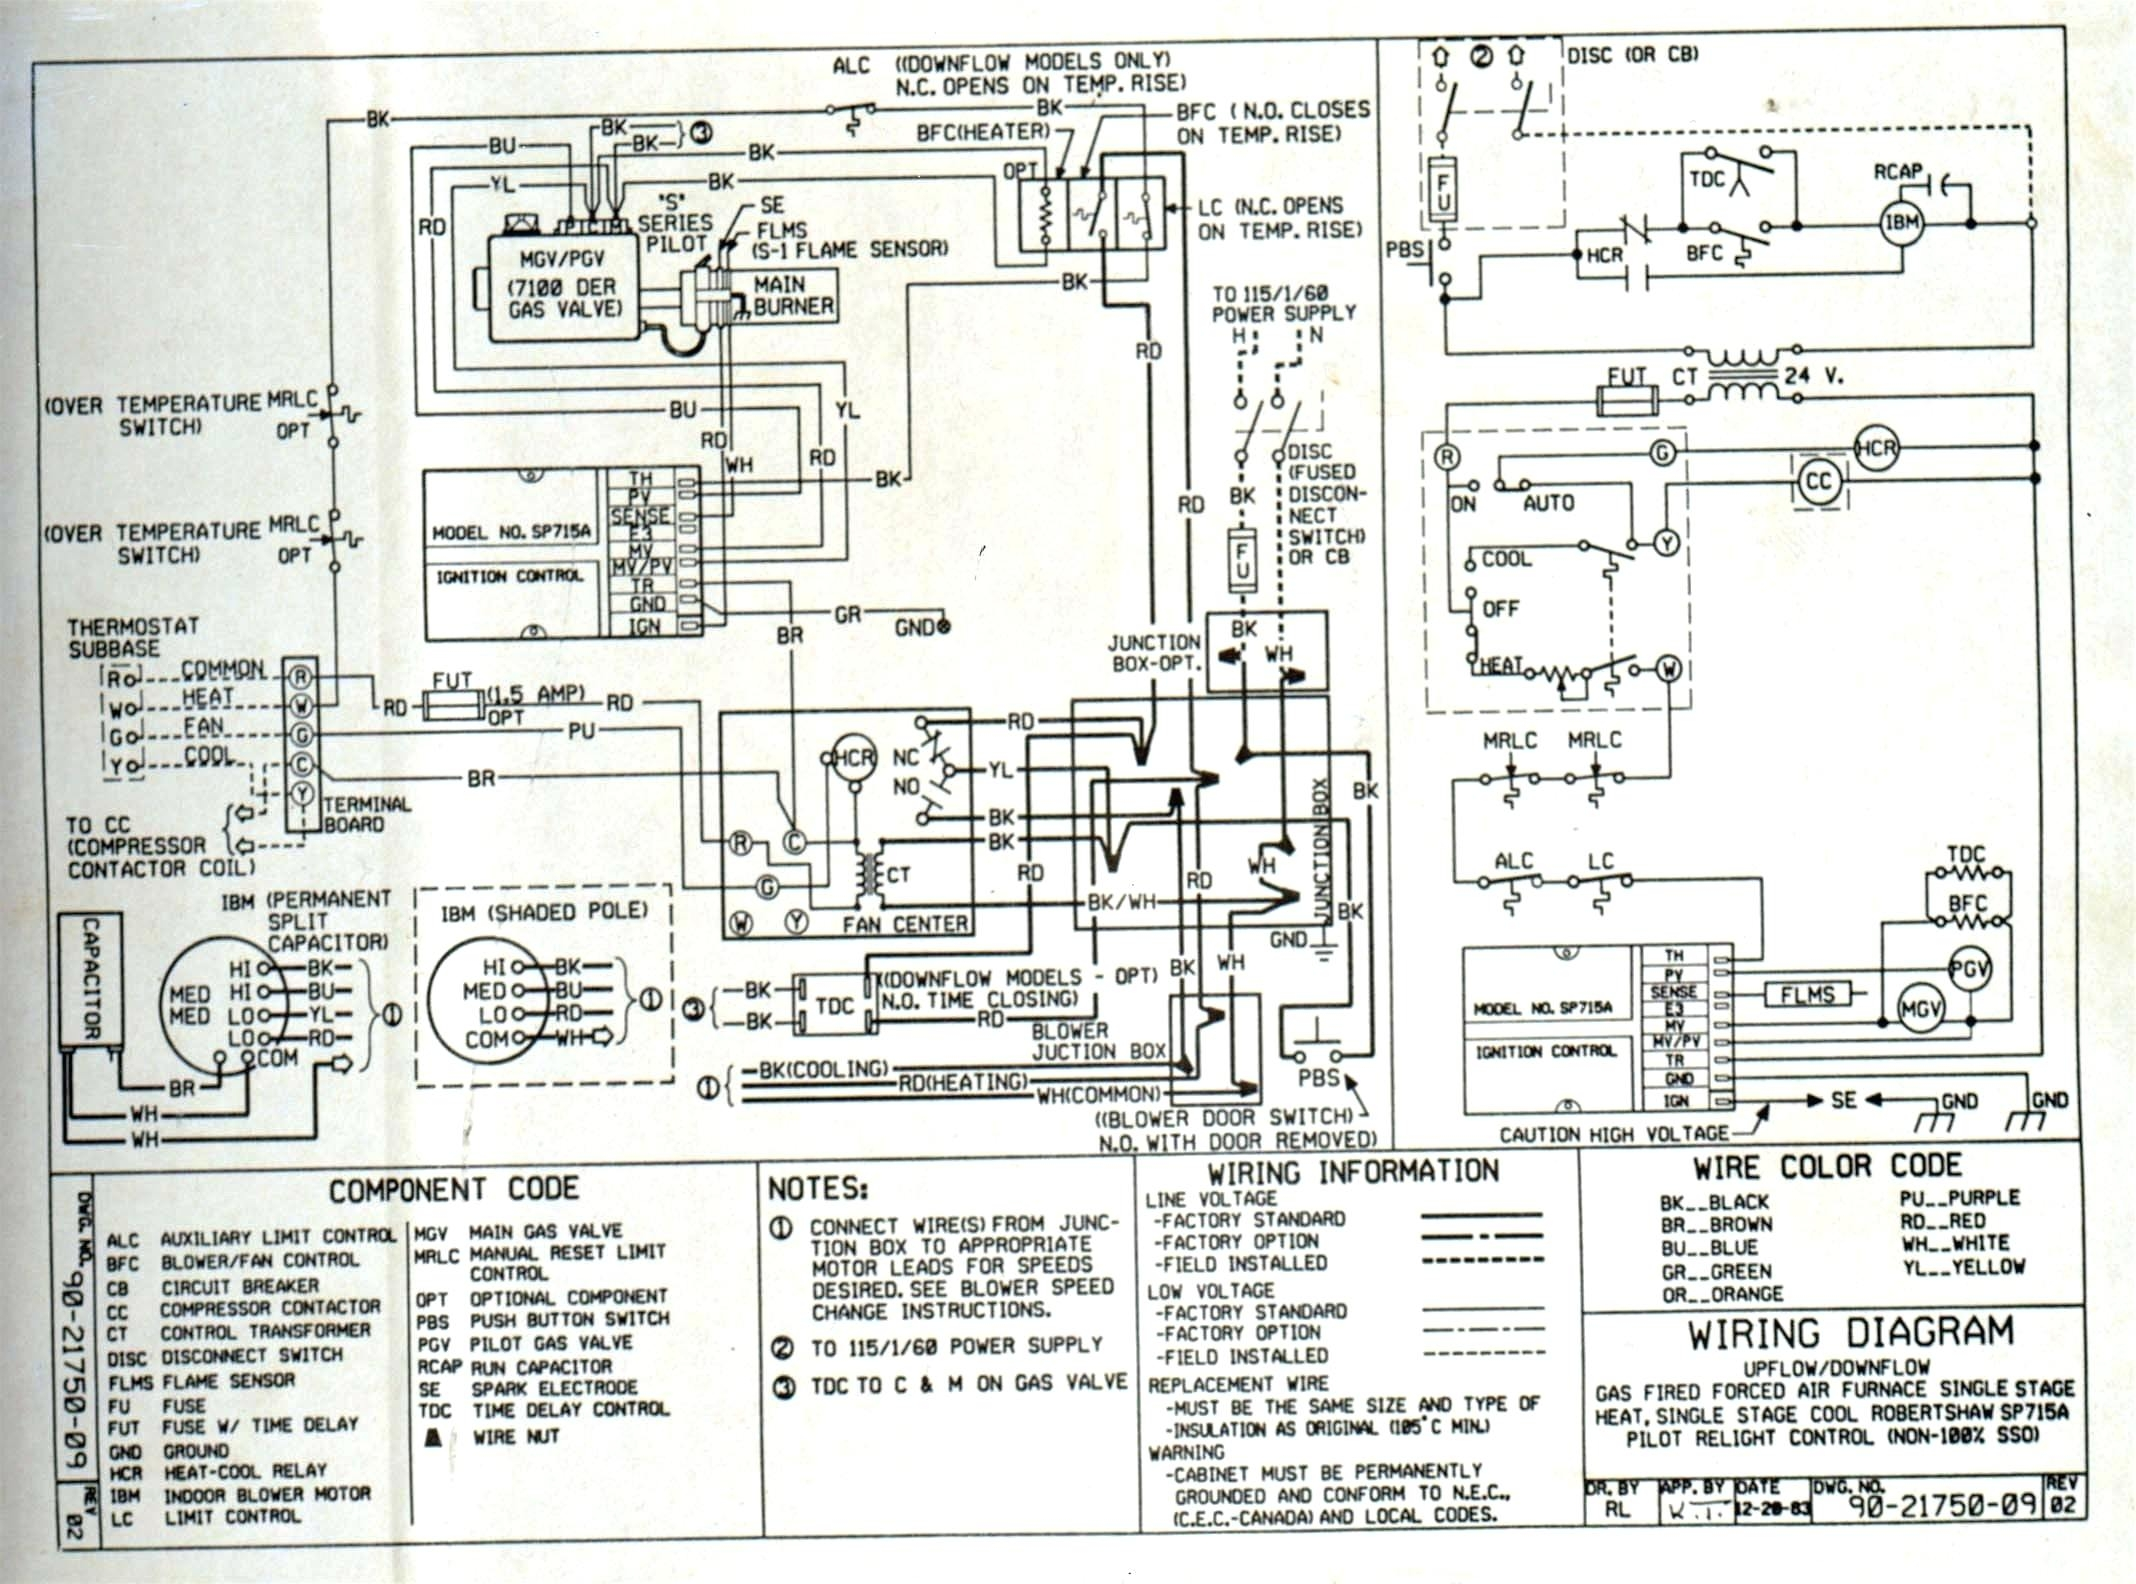 asco series 300 wiring diagram Download-Asco Series 300 Wiring Diagram Luxury Hvac thermostat Wiring Diagram Carrier Wonderful Advent Air 16-o